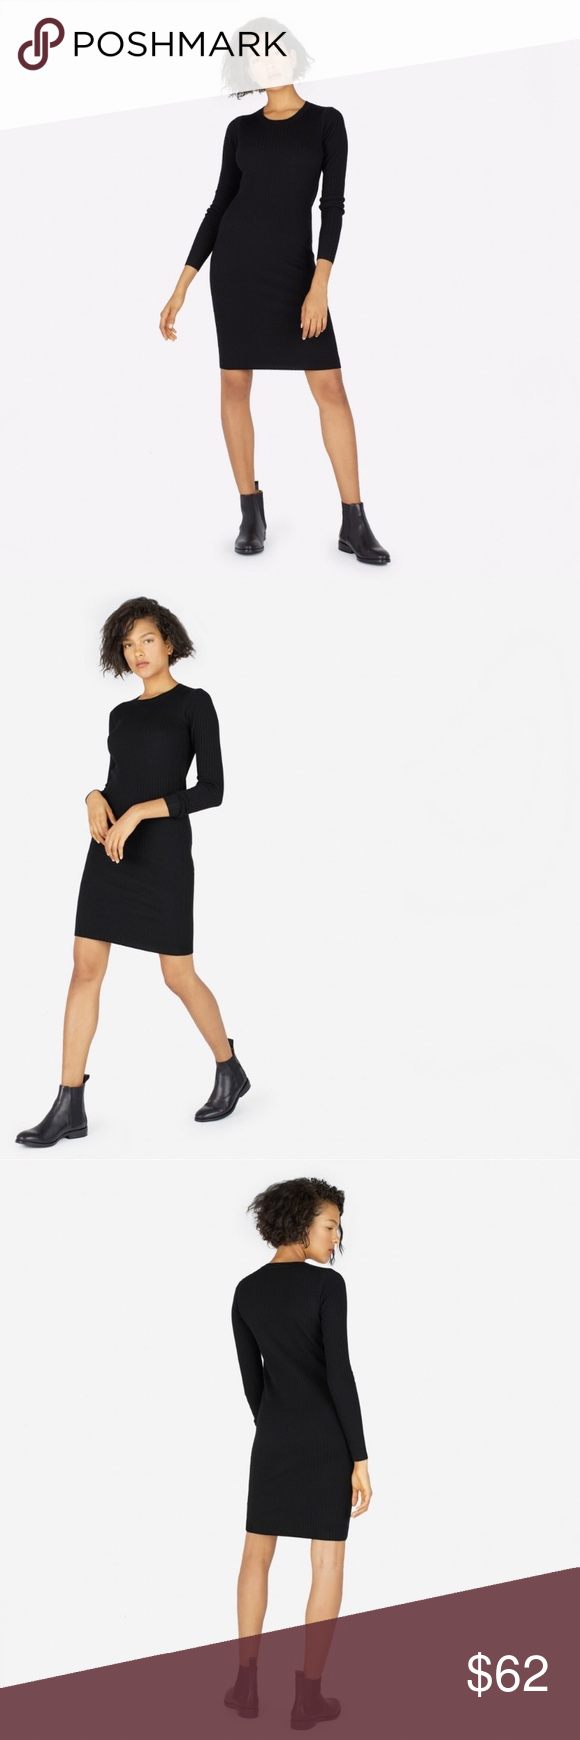 343719427be EVERLANE The Luxe Wool Ribbed Long Sleeve Dress EVERLANE The Luxe Wool  Ribbed Long Sleeve Dress Stretchable